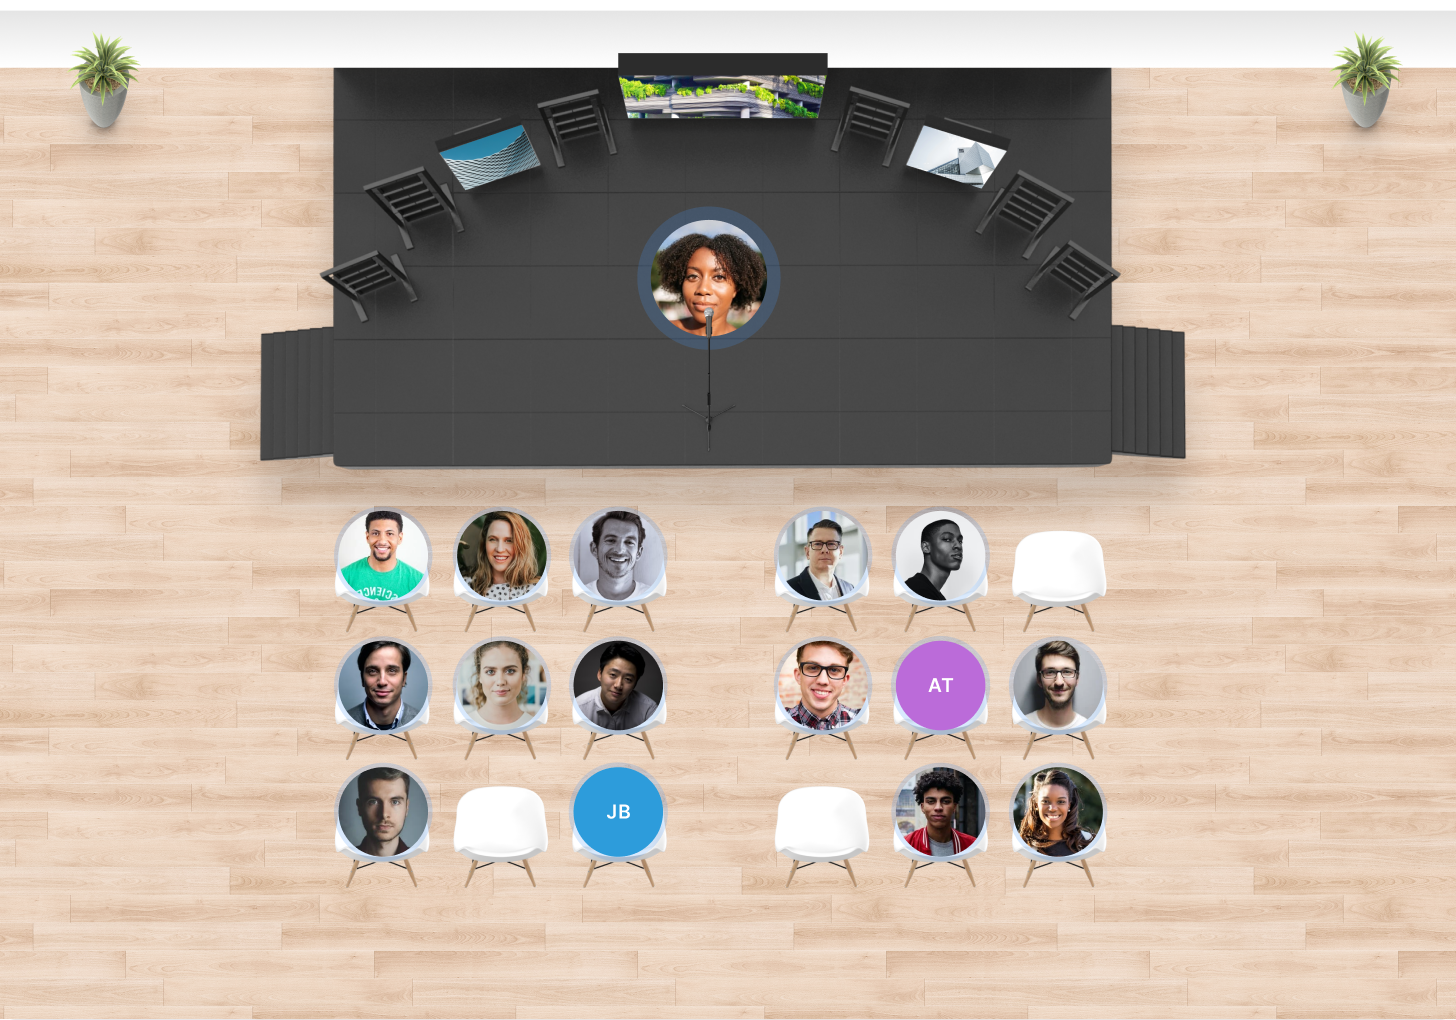 Hosting a virtual event in Teamflow